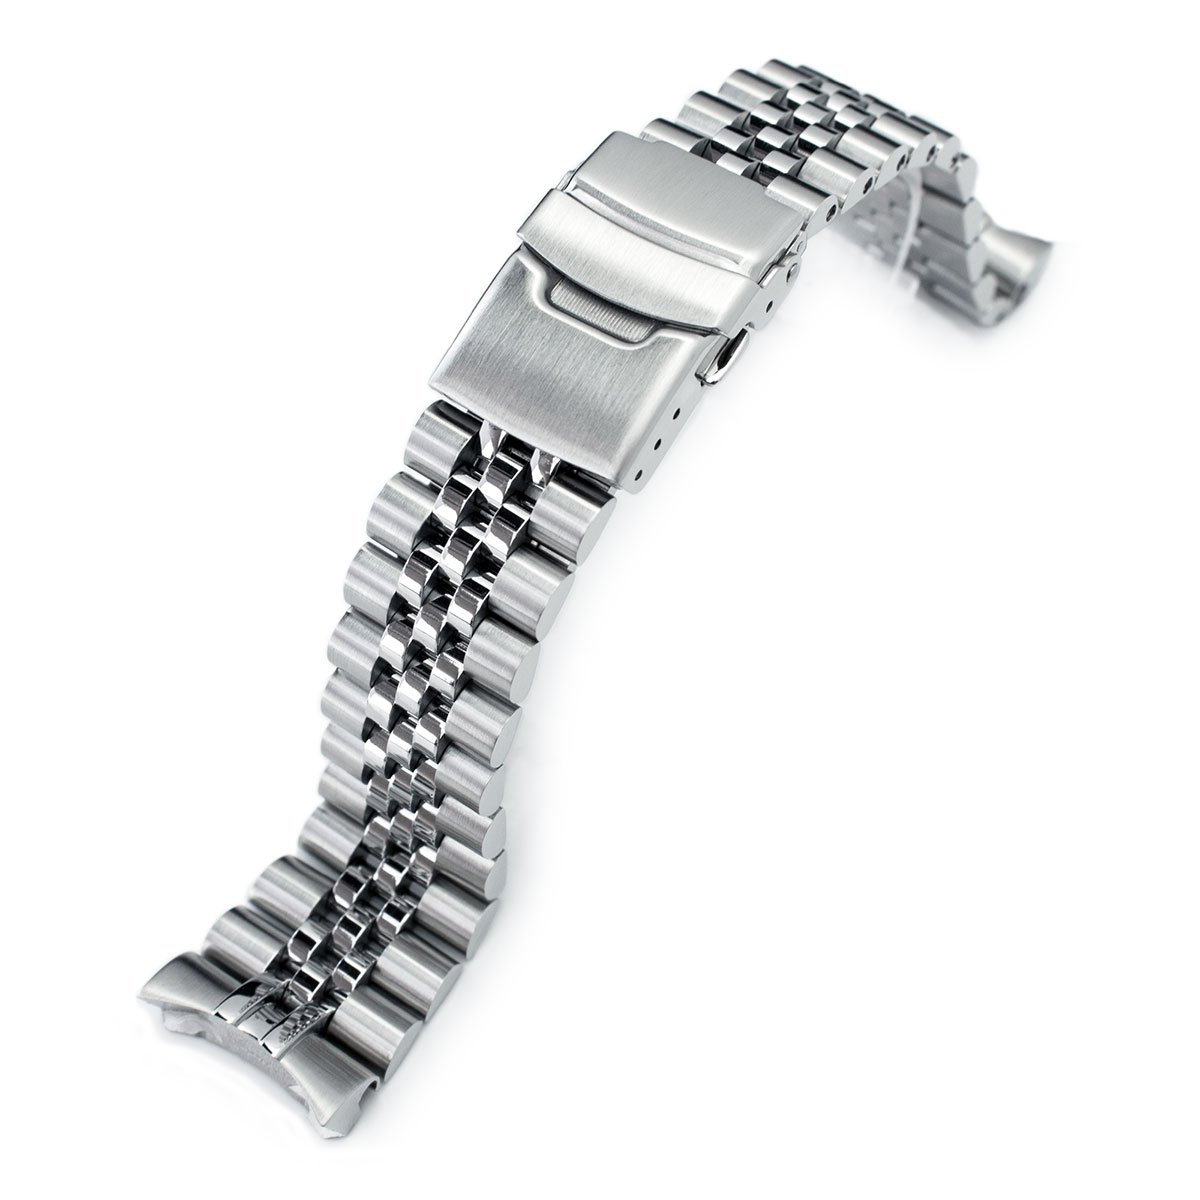 Super 3D Jubilee Replacement Bracelet for Seiko SKX007 22mm 316L-SS Watch Band by MiLTAT